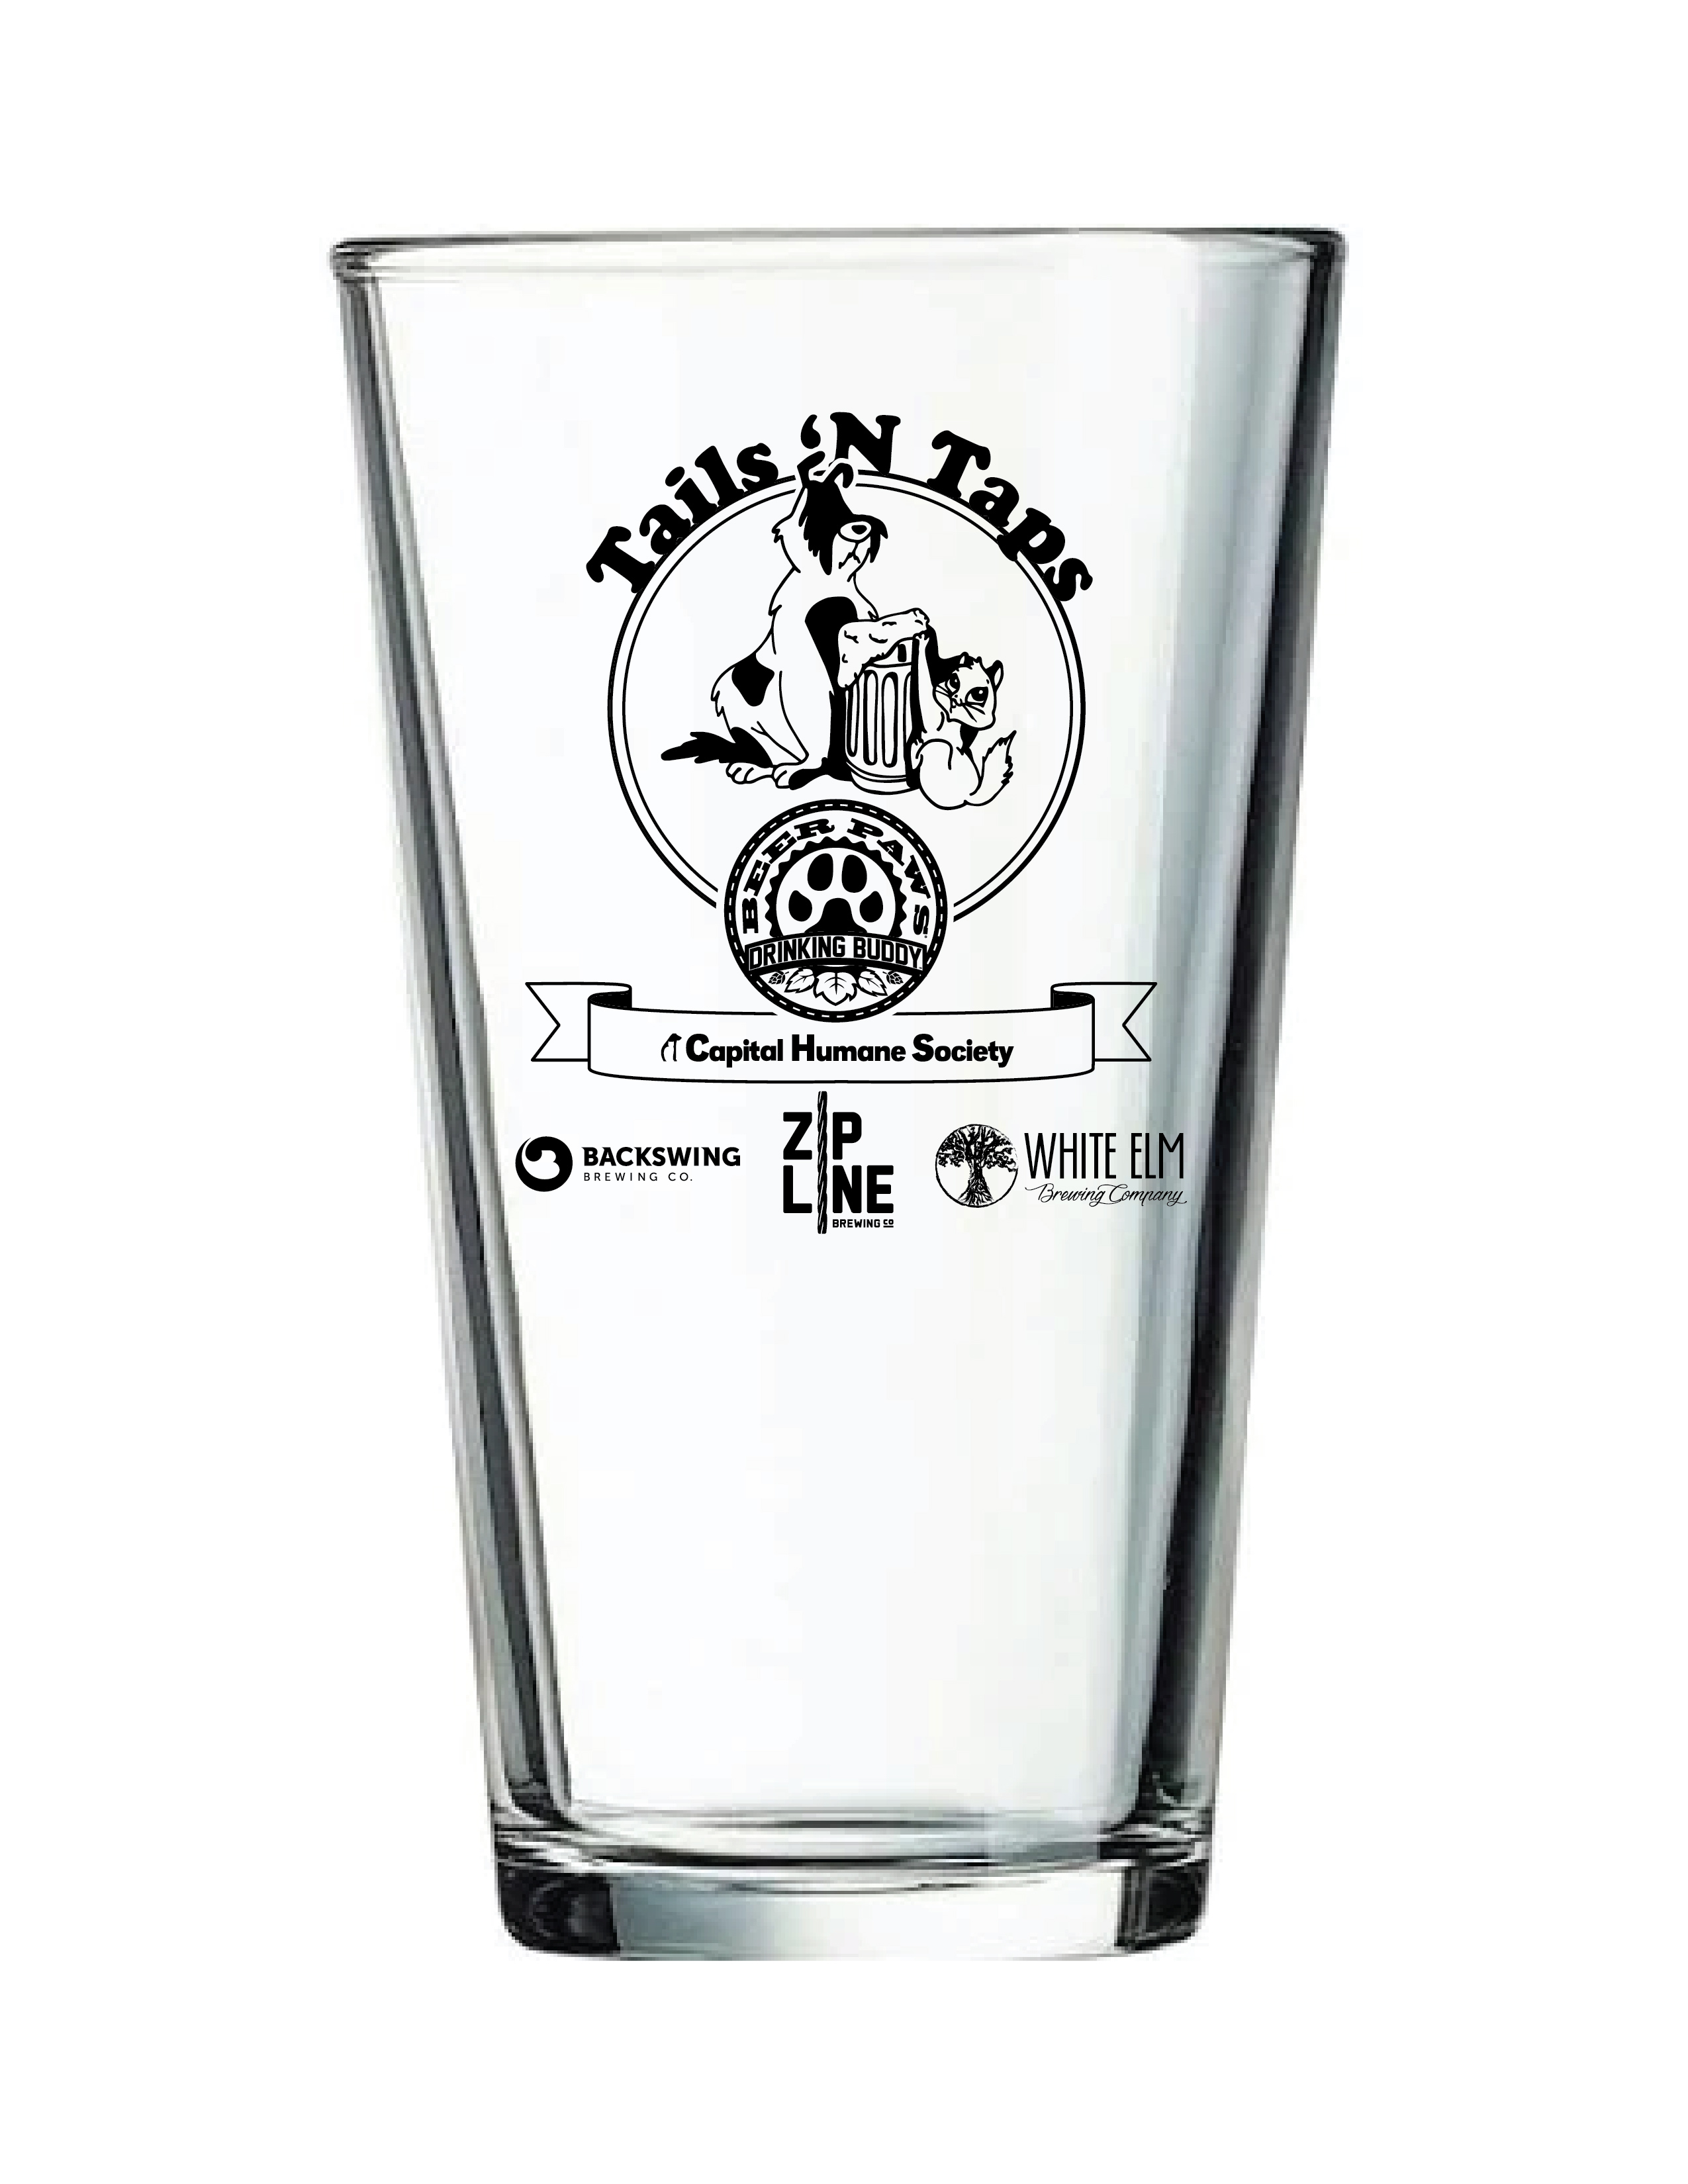 tails and taps glass mockup 1 with zipline logo-01.jpg